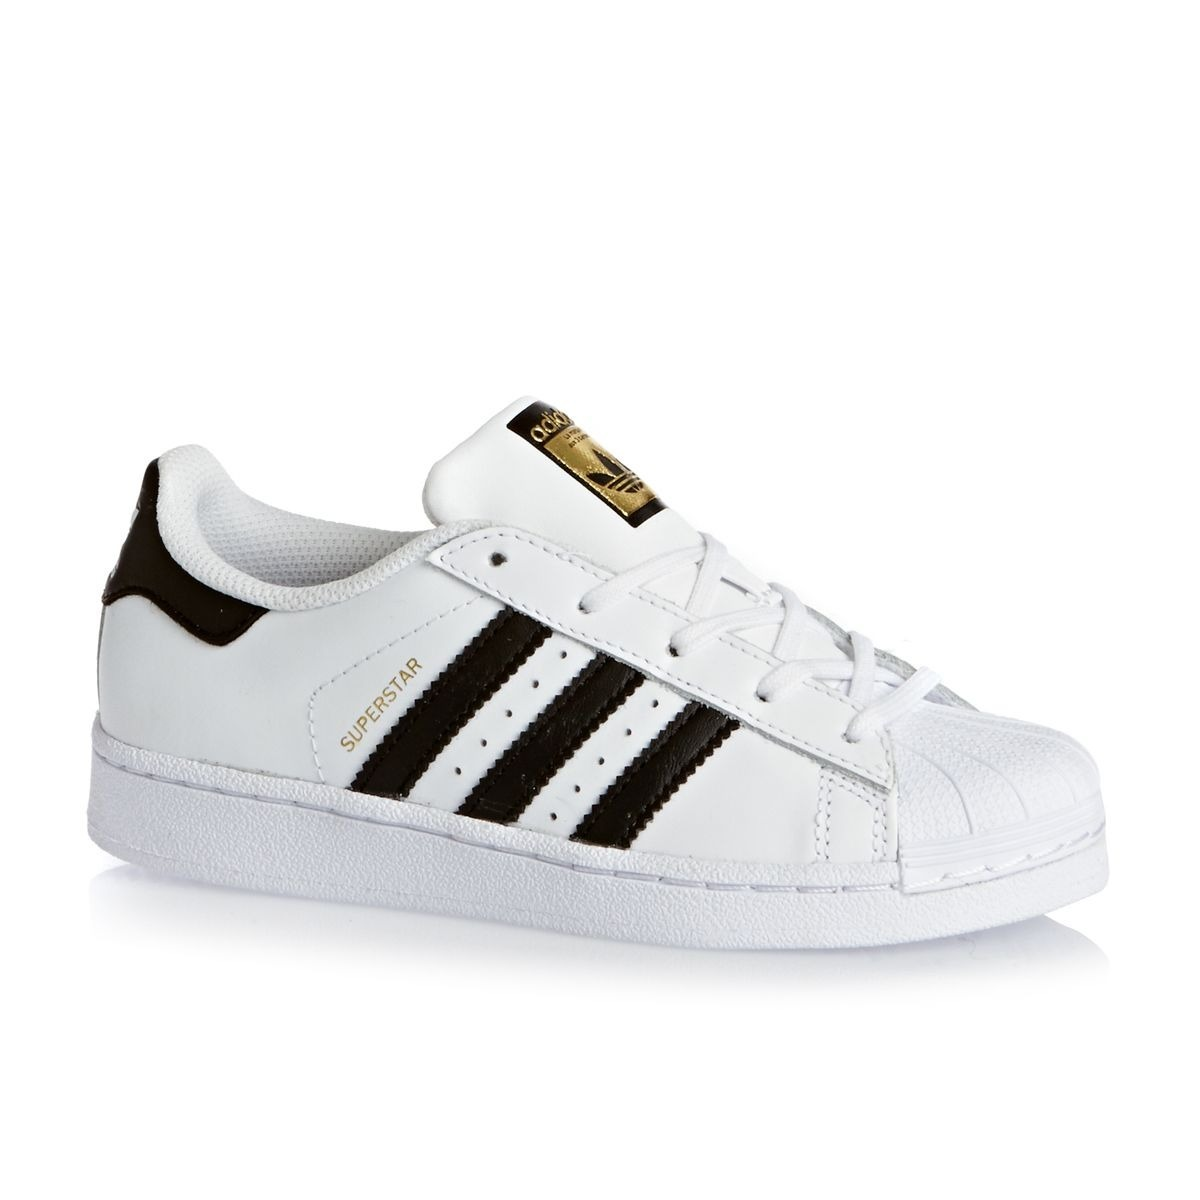 59fee77311e24 tênis adidas superstar foundation feminino masculino oferta. Carregando  zoom.